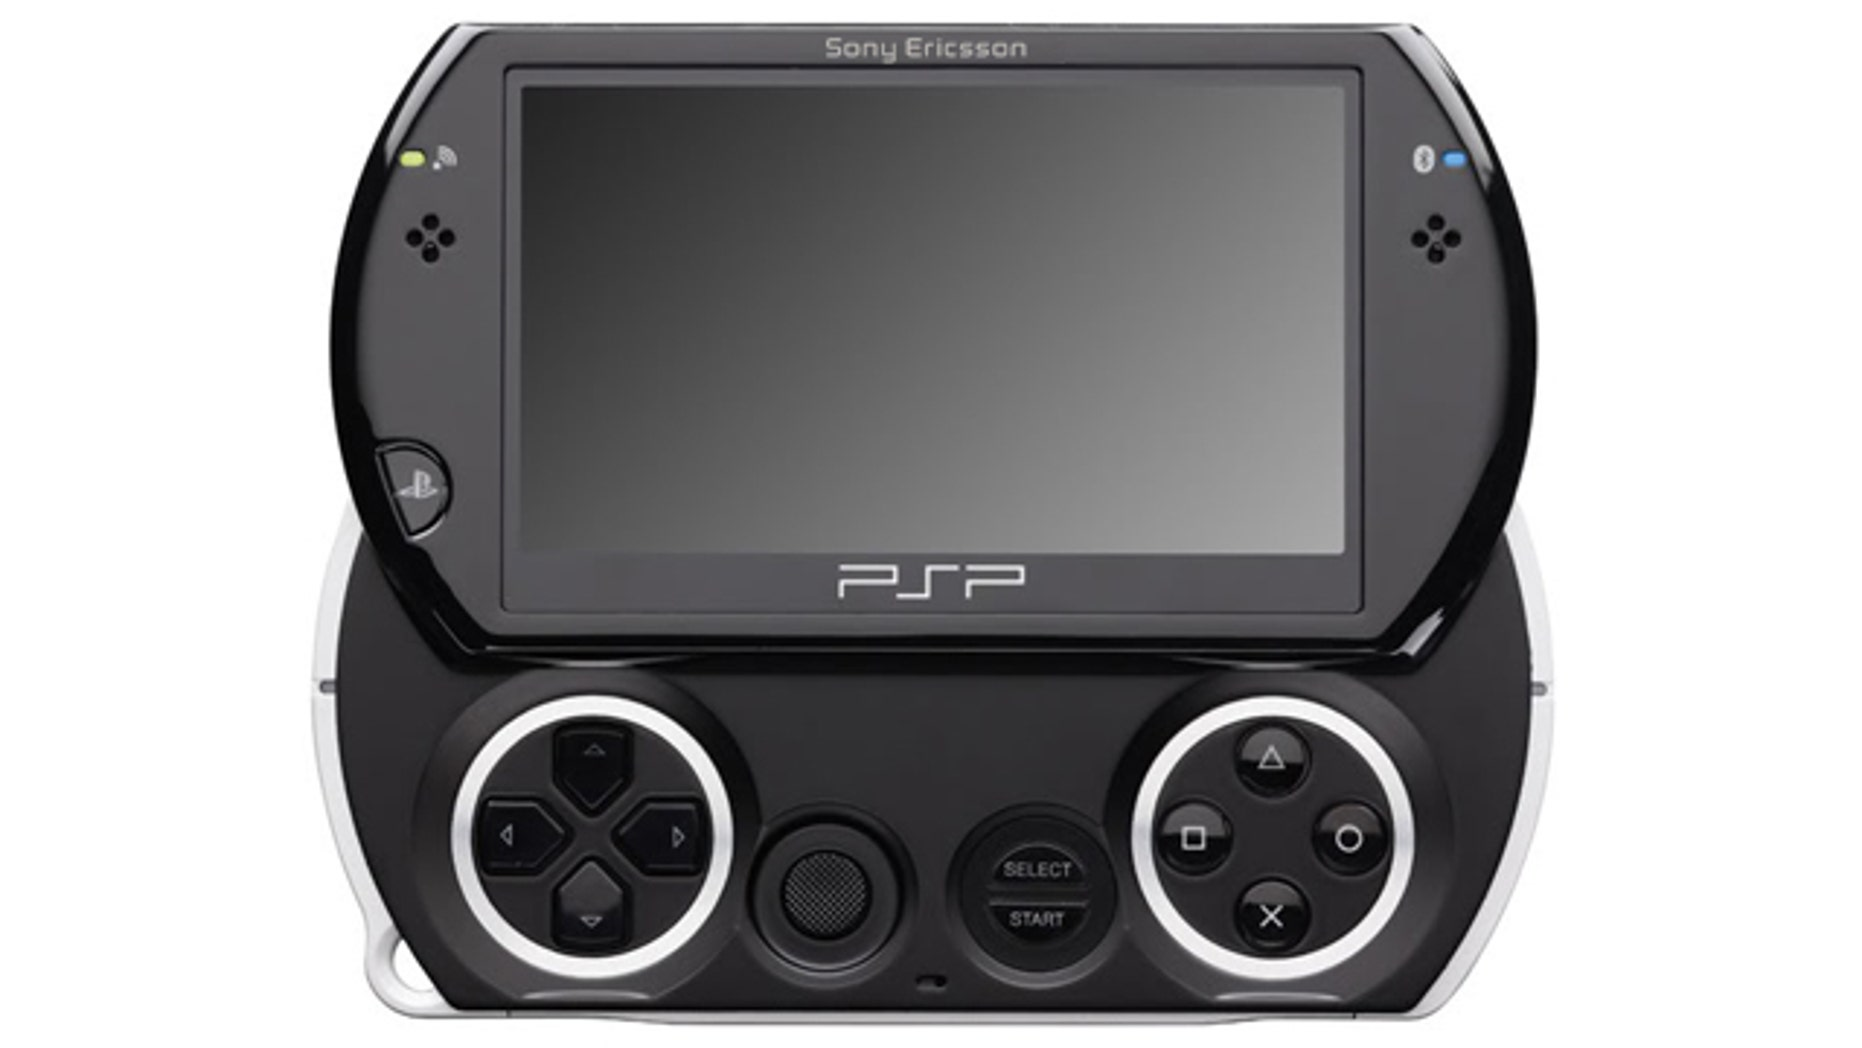 Is this what a Sony Ericsson Playstation smartphone will look like?